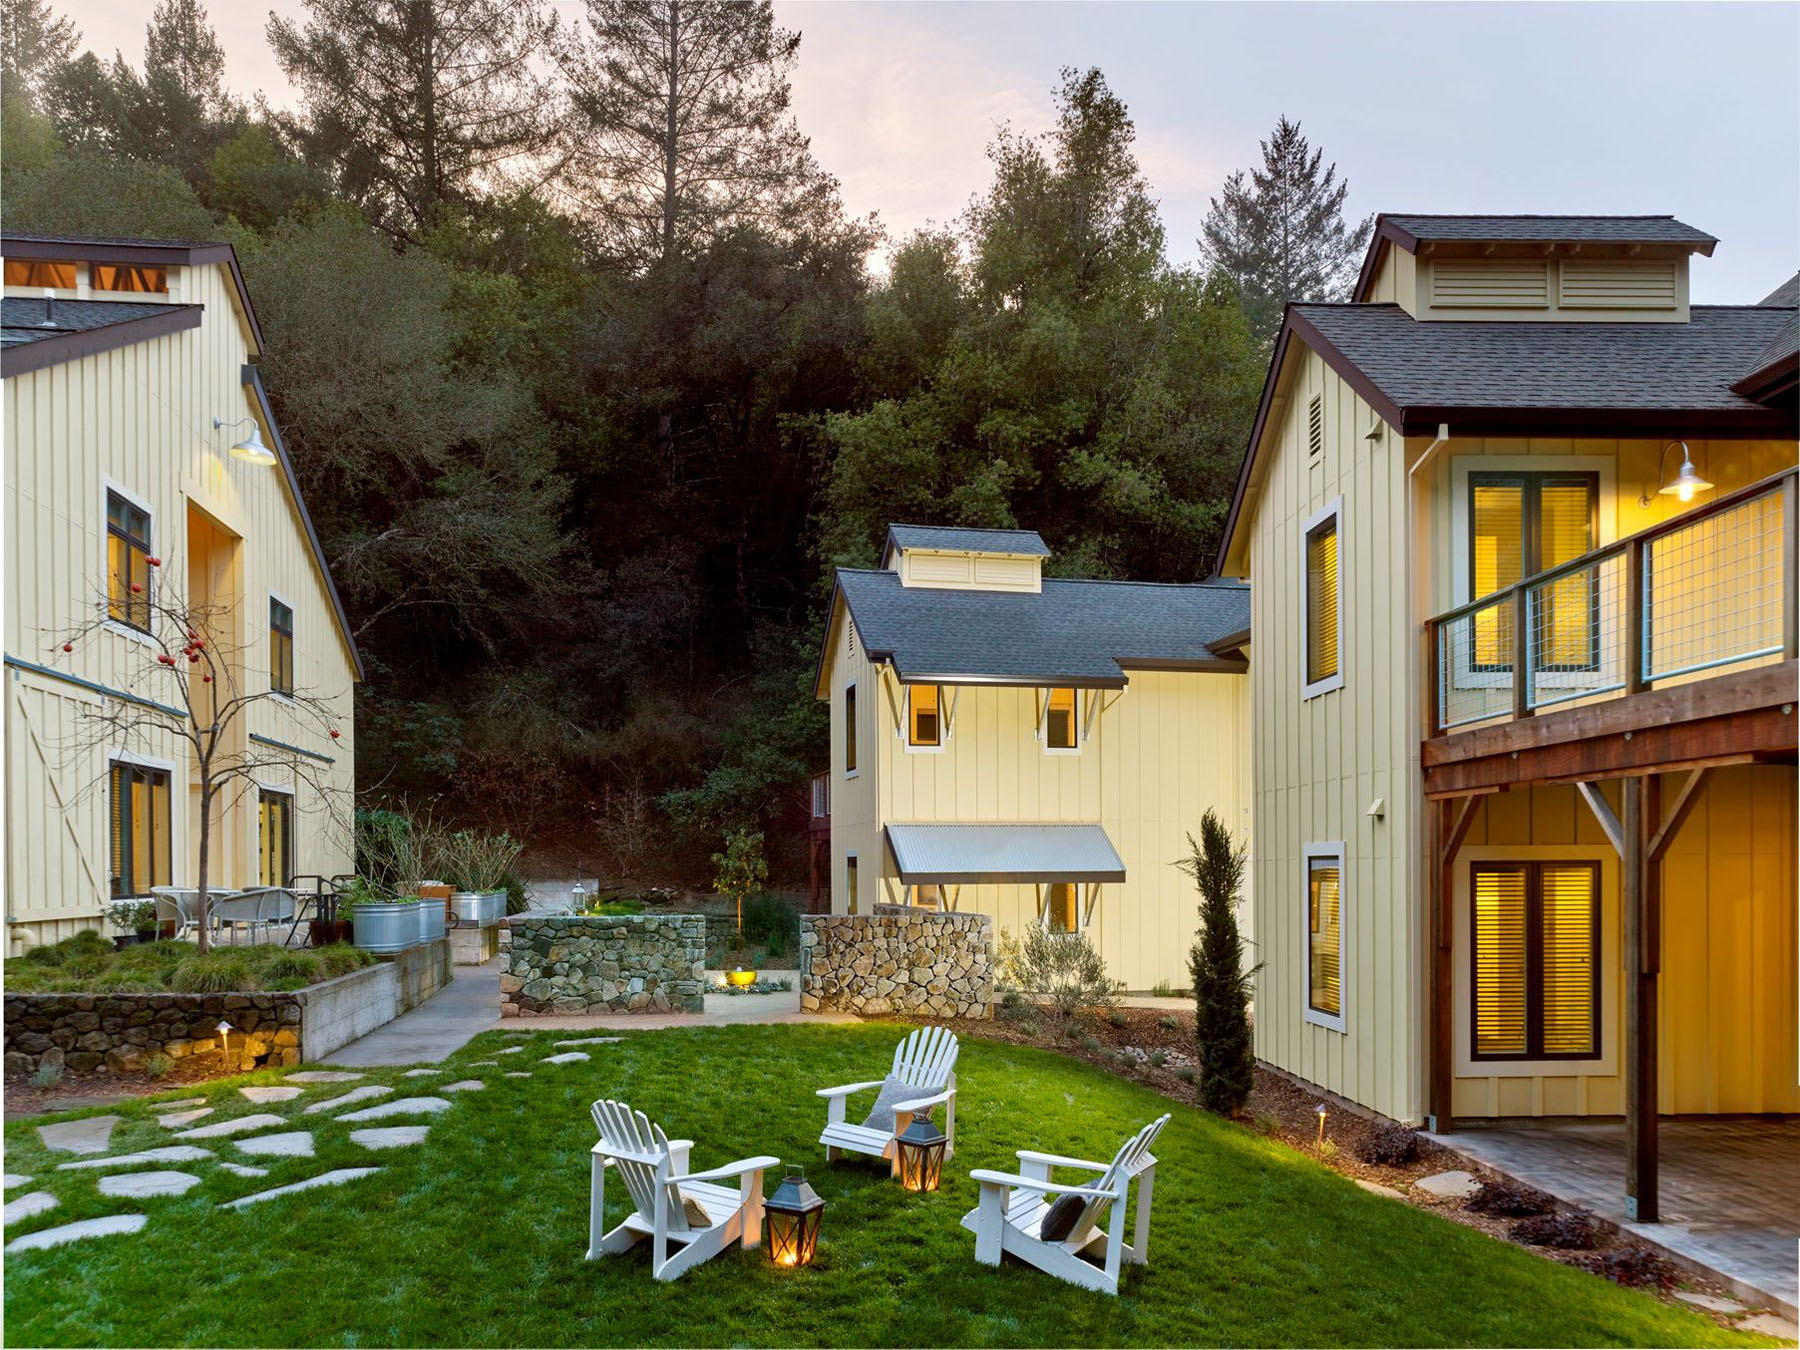 farmhouse inn: a romantic boutique hotel in california wine